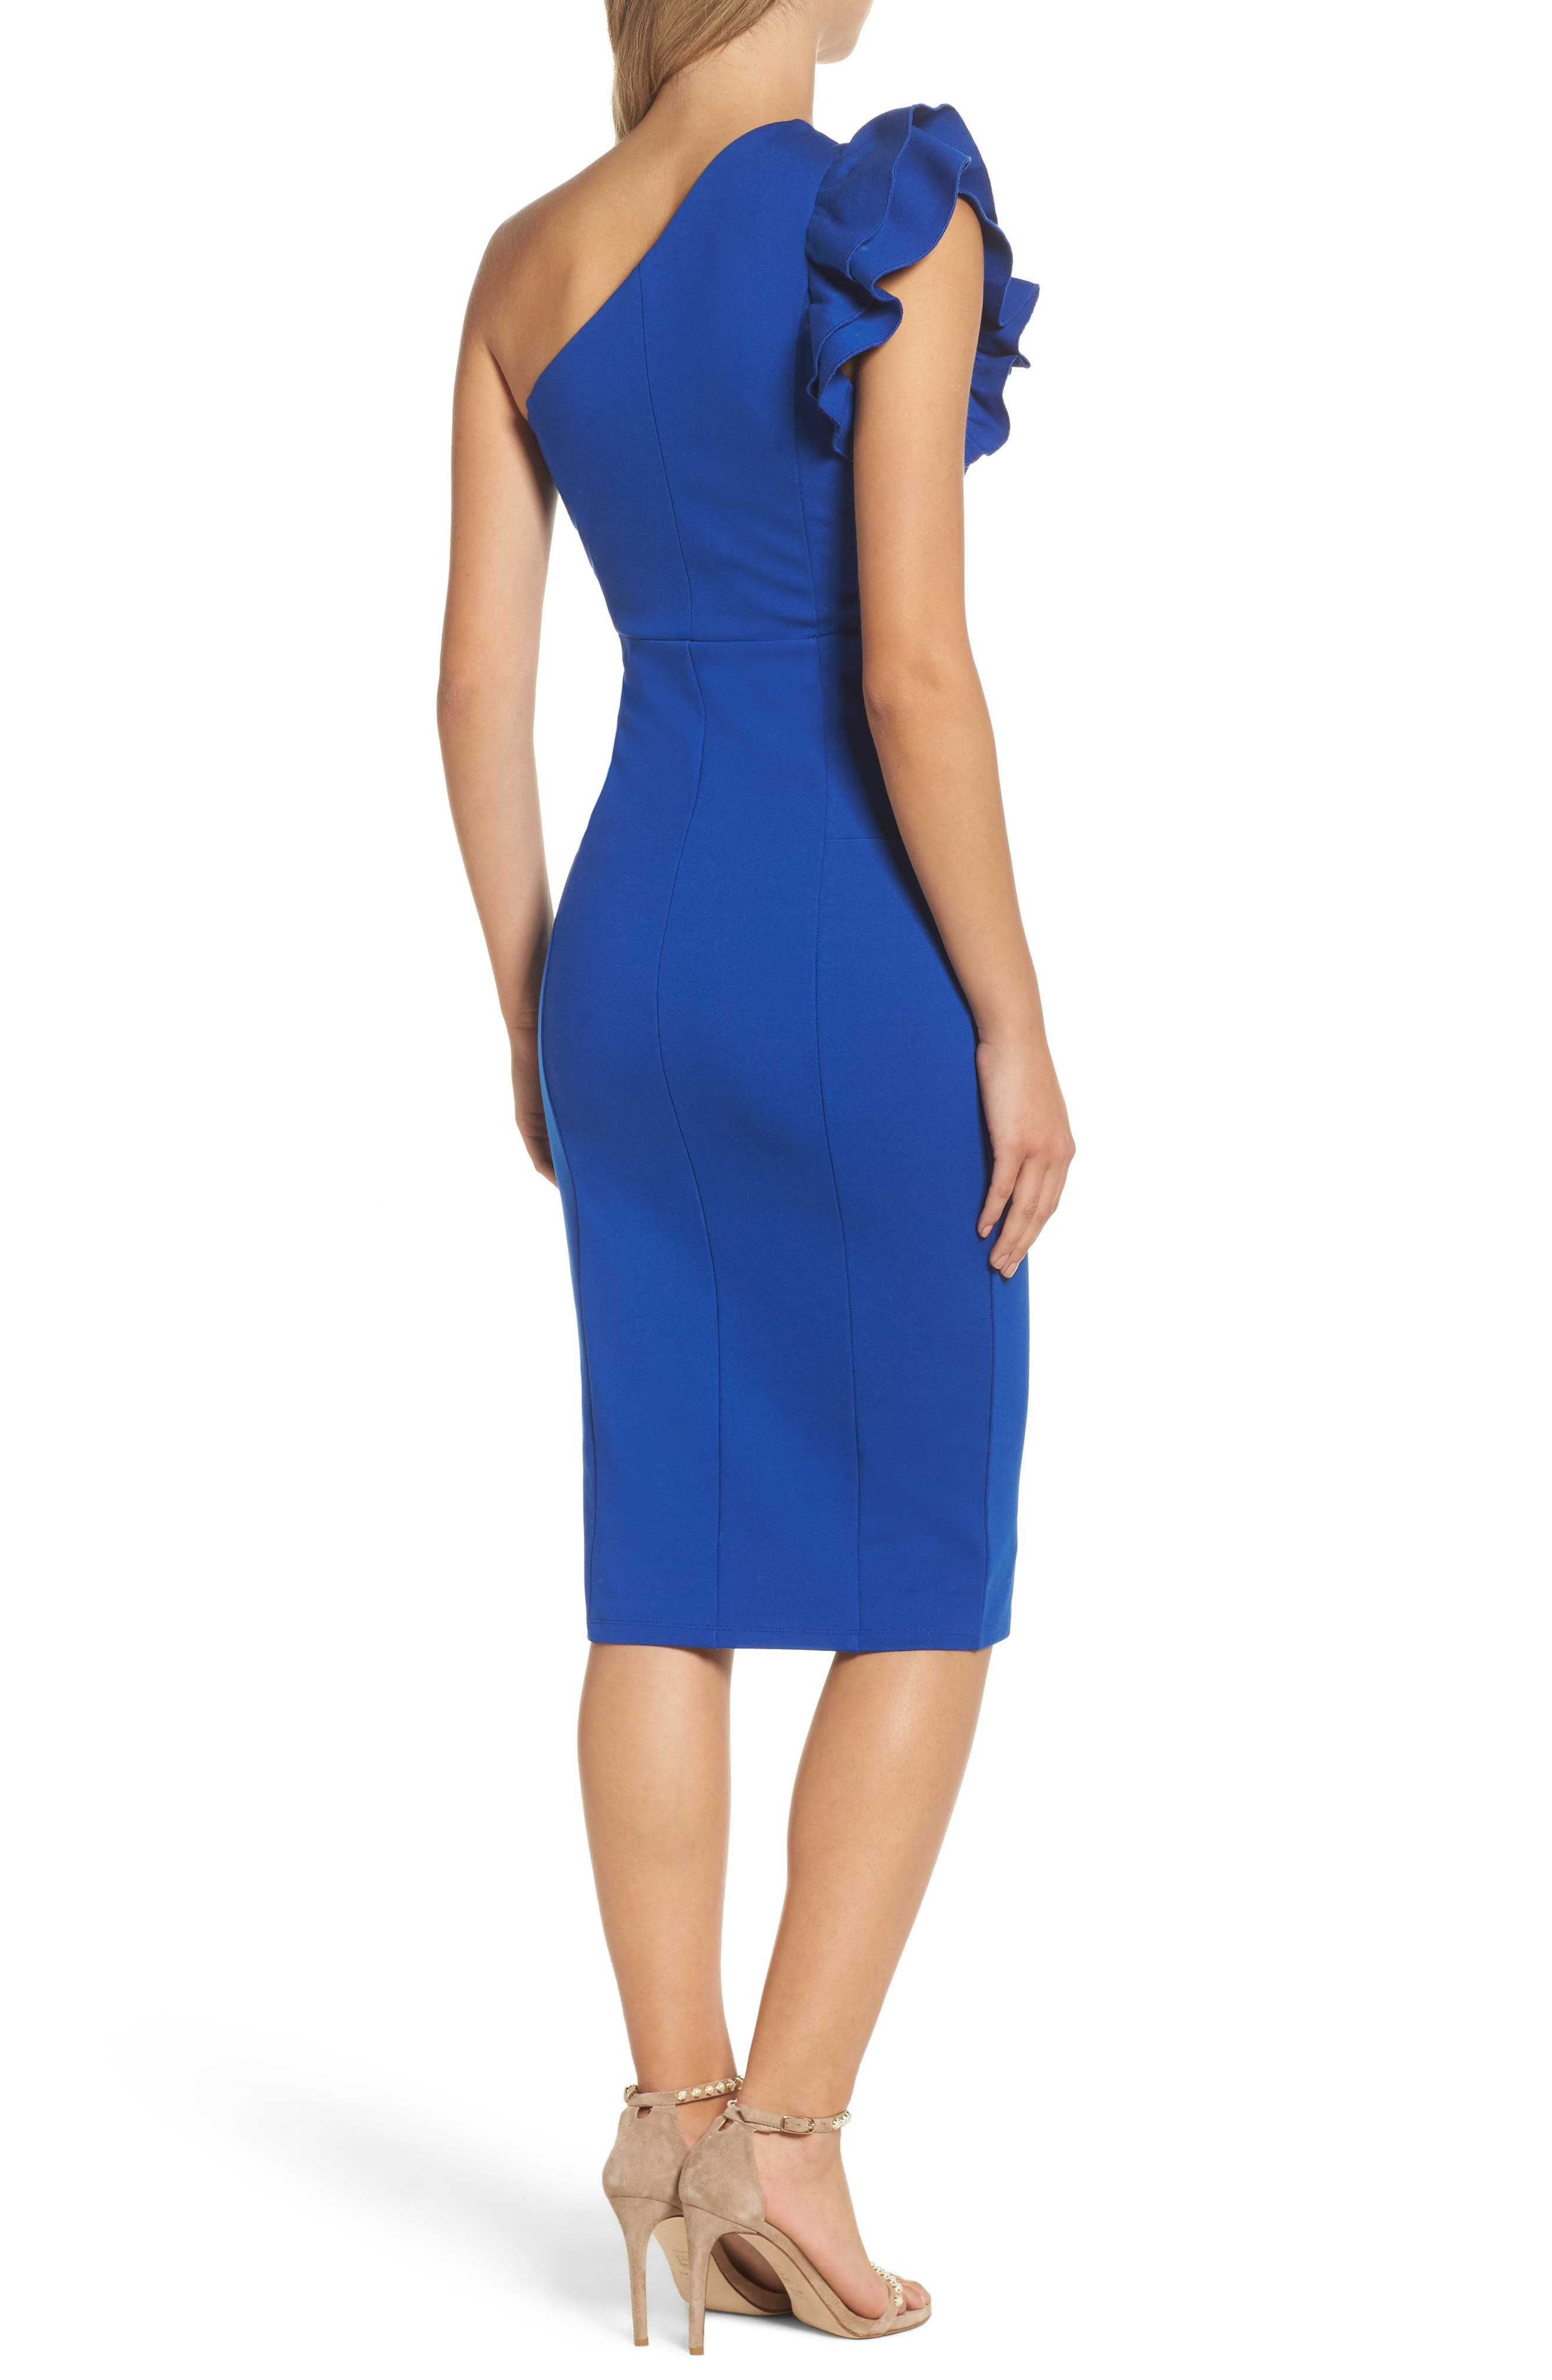 Alternate Image 2  - Felicity & Coco Marilyn One-Shoulder Sheath Dress (Nordstrom Exclusive)